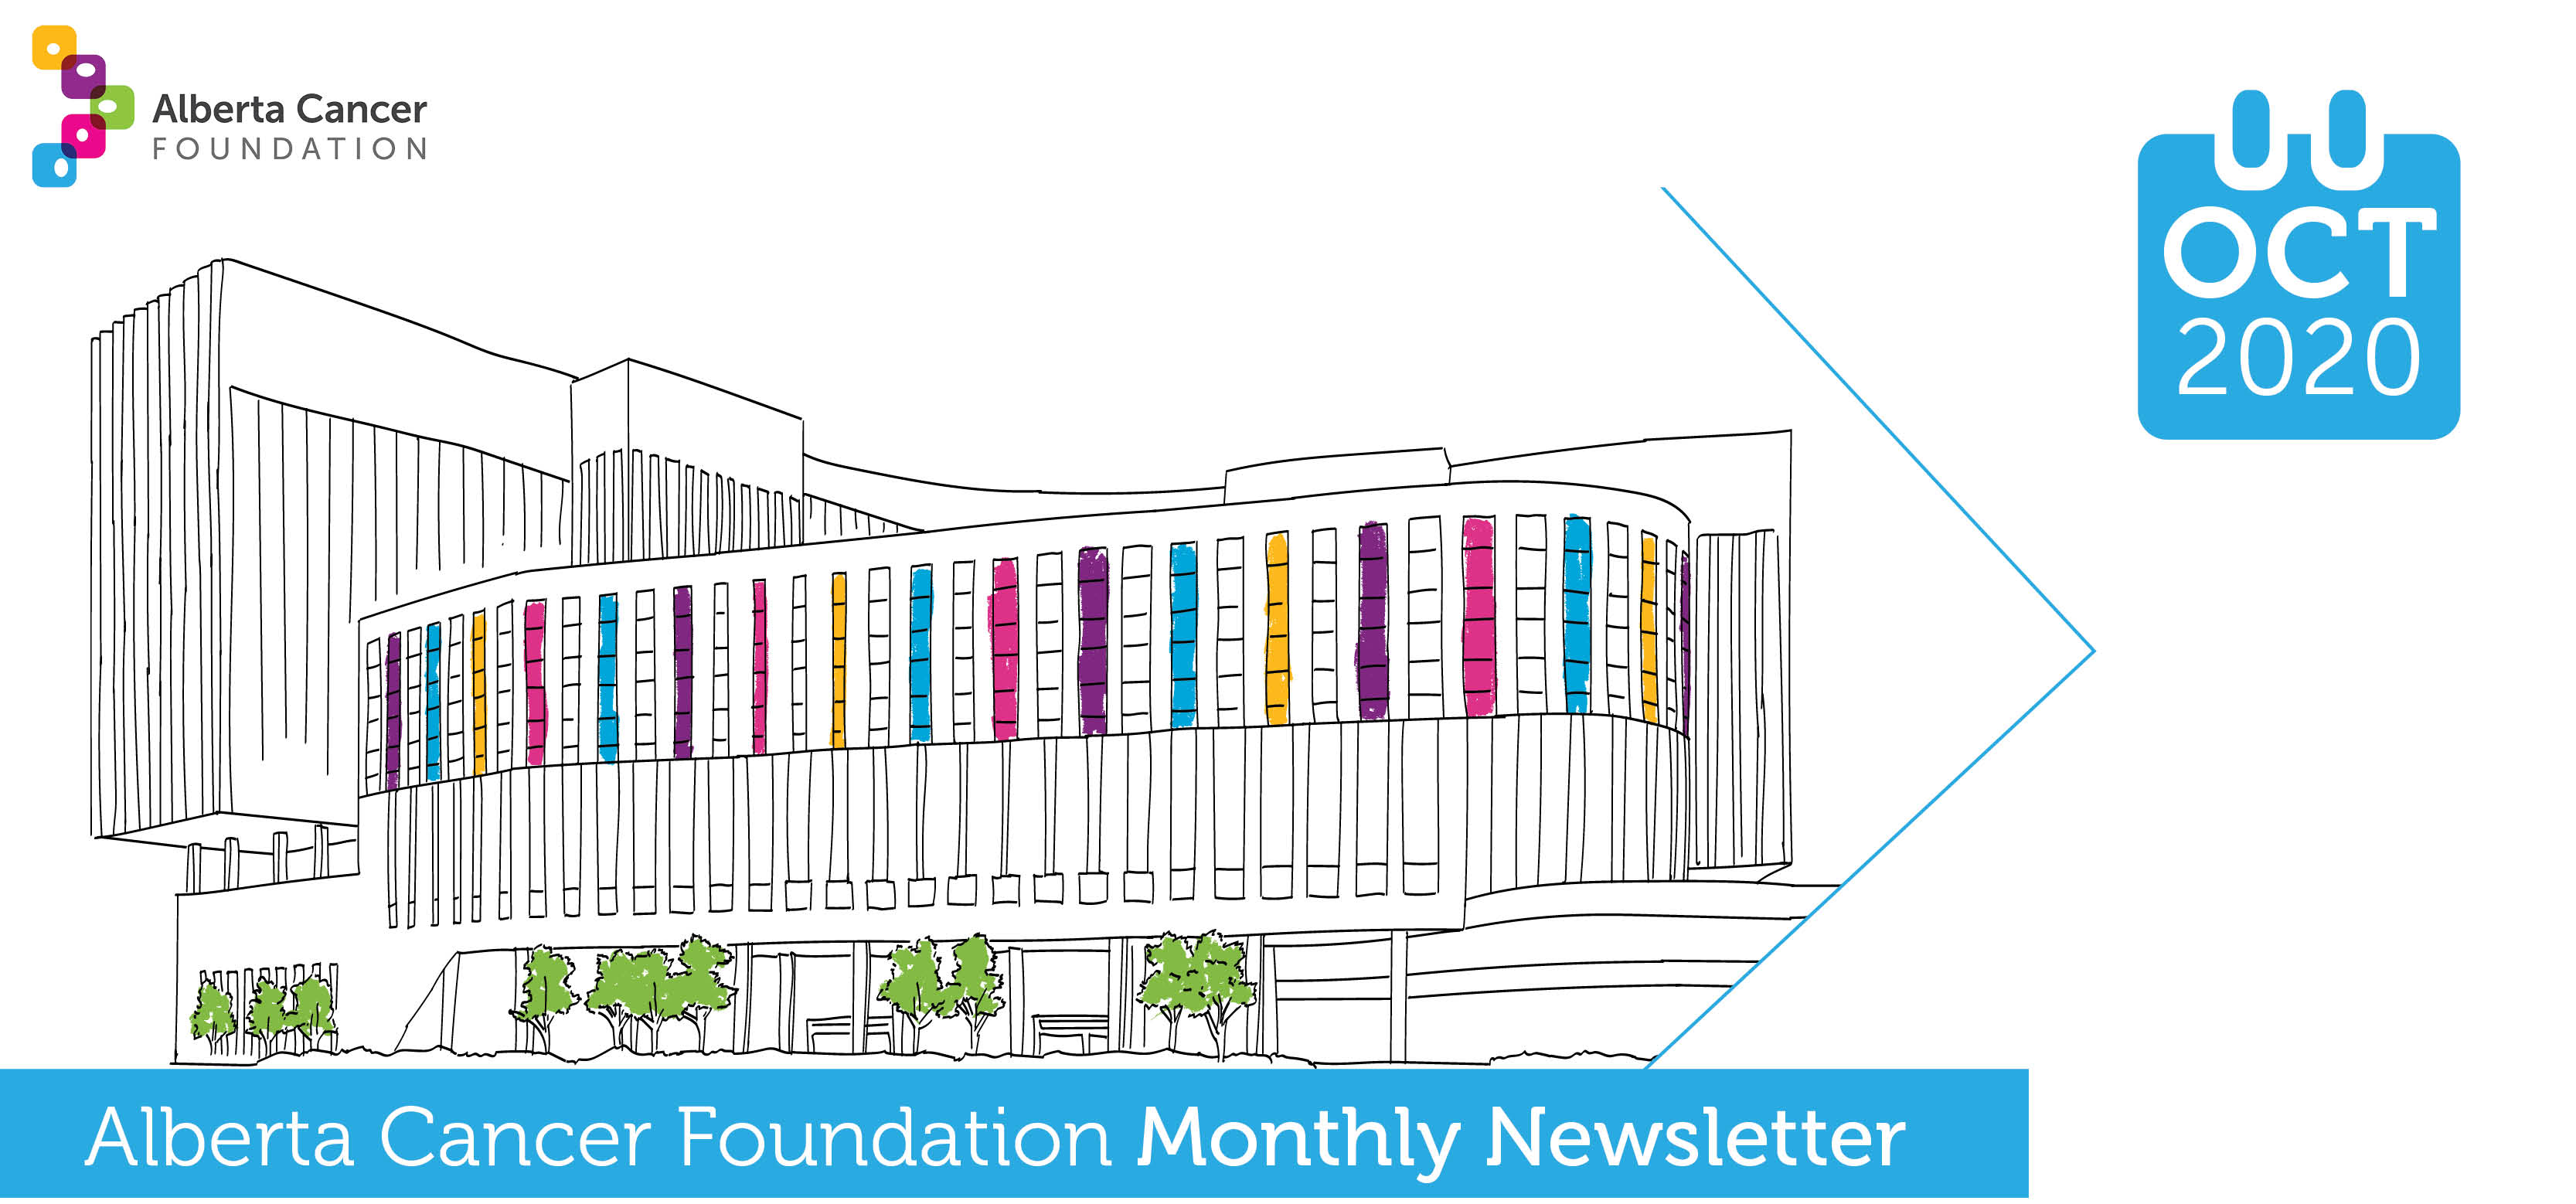 Alberta Cancer Foundation Monthly News - October 2020